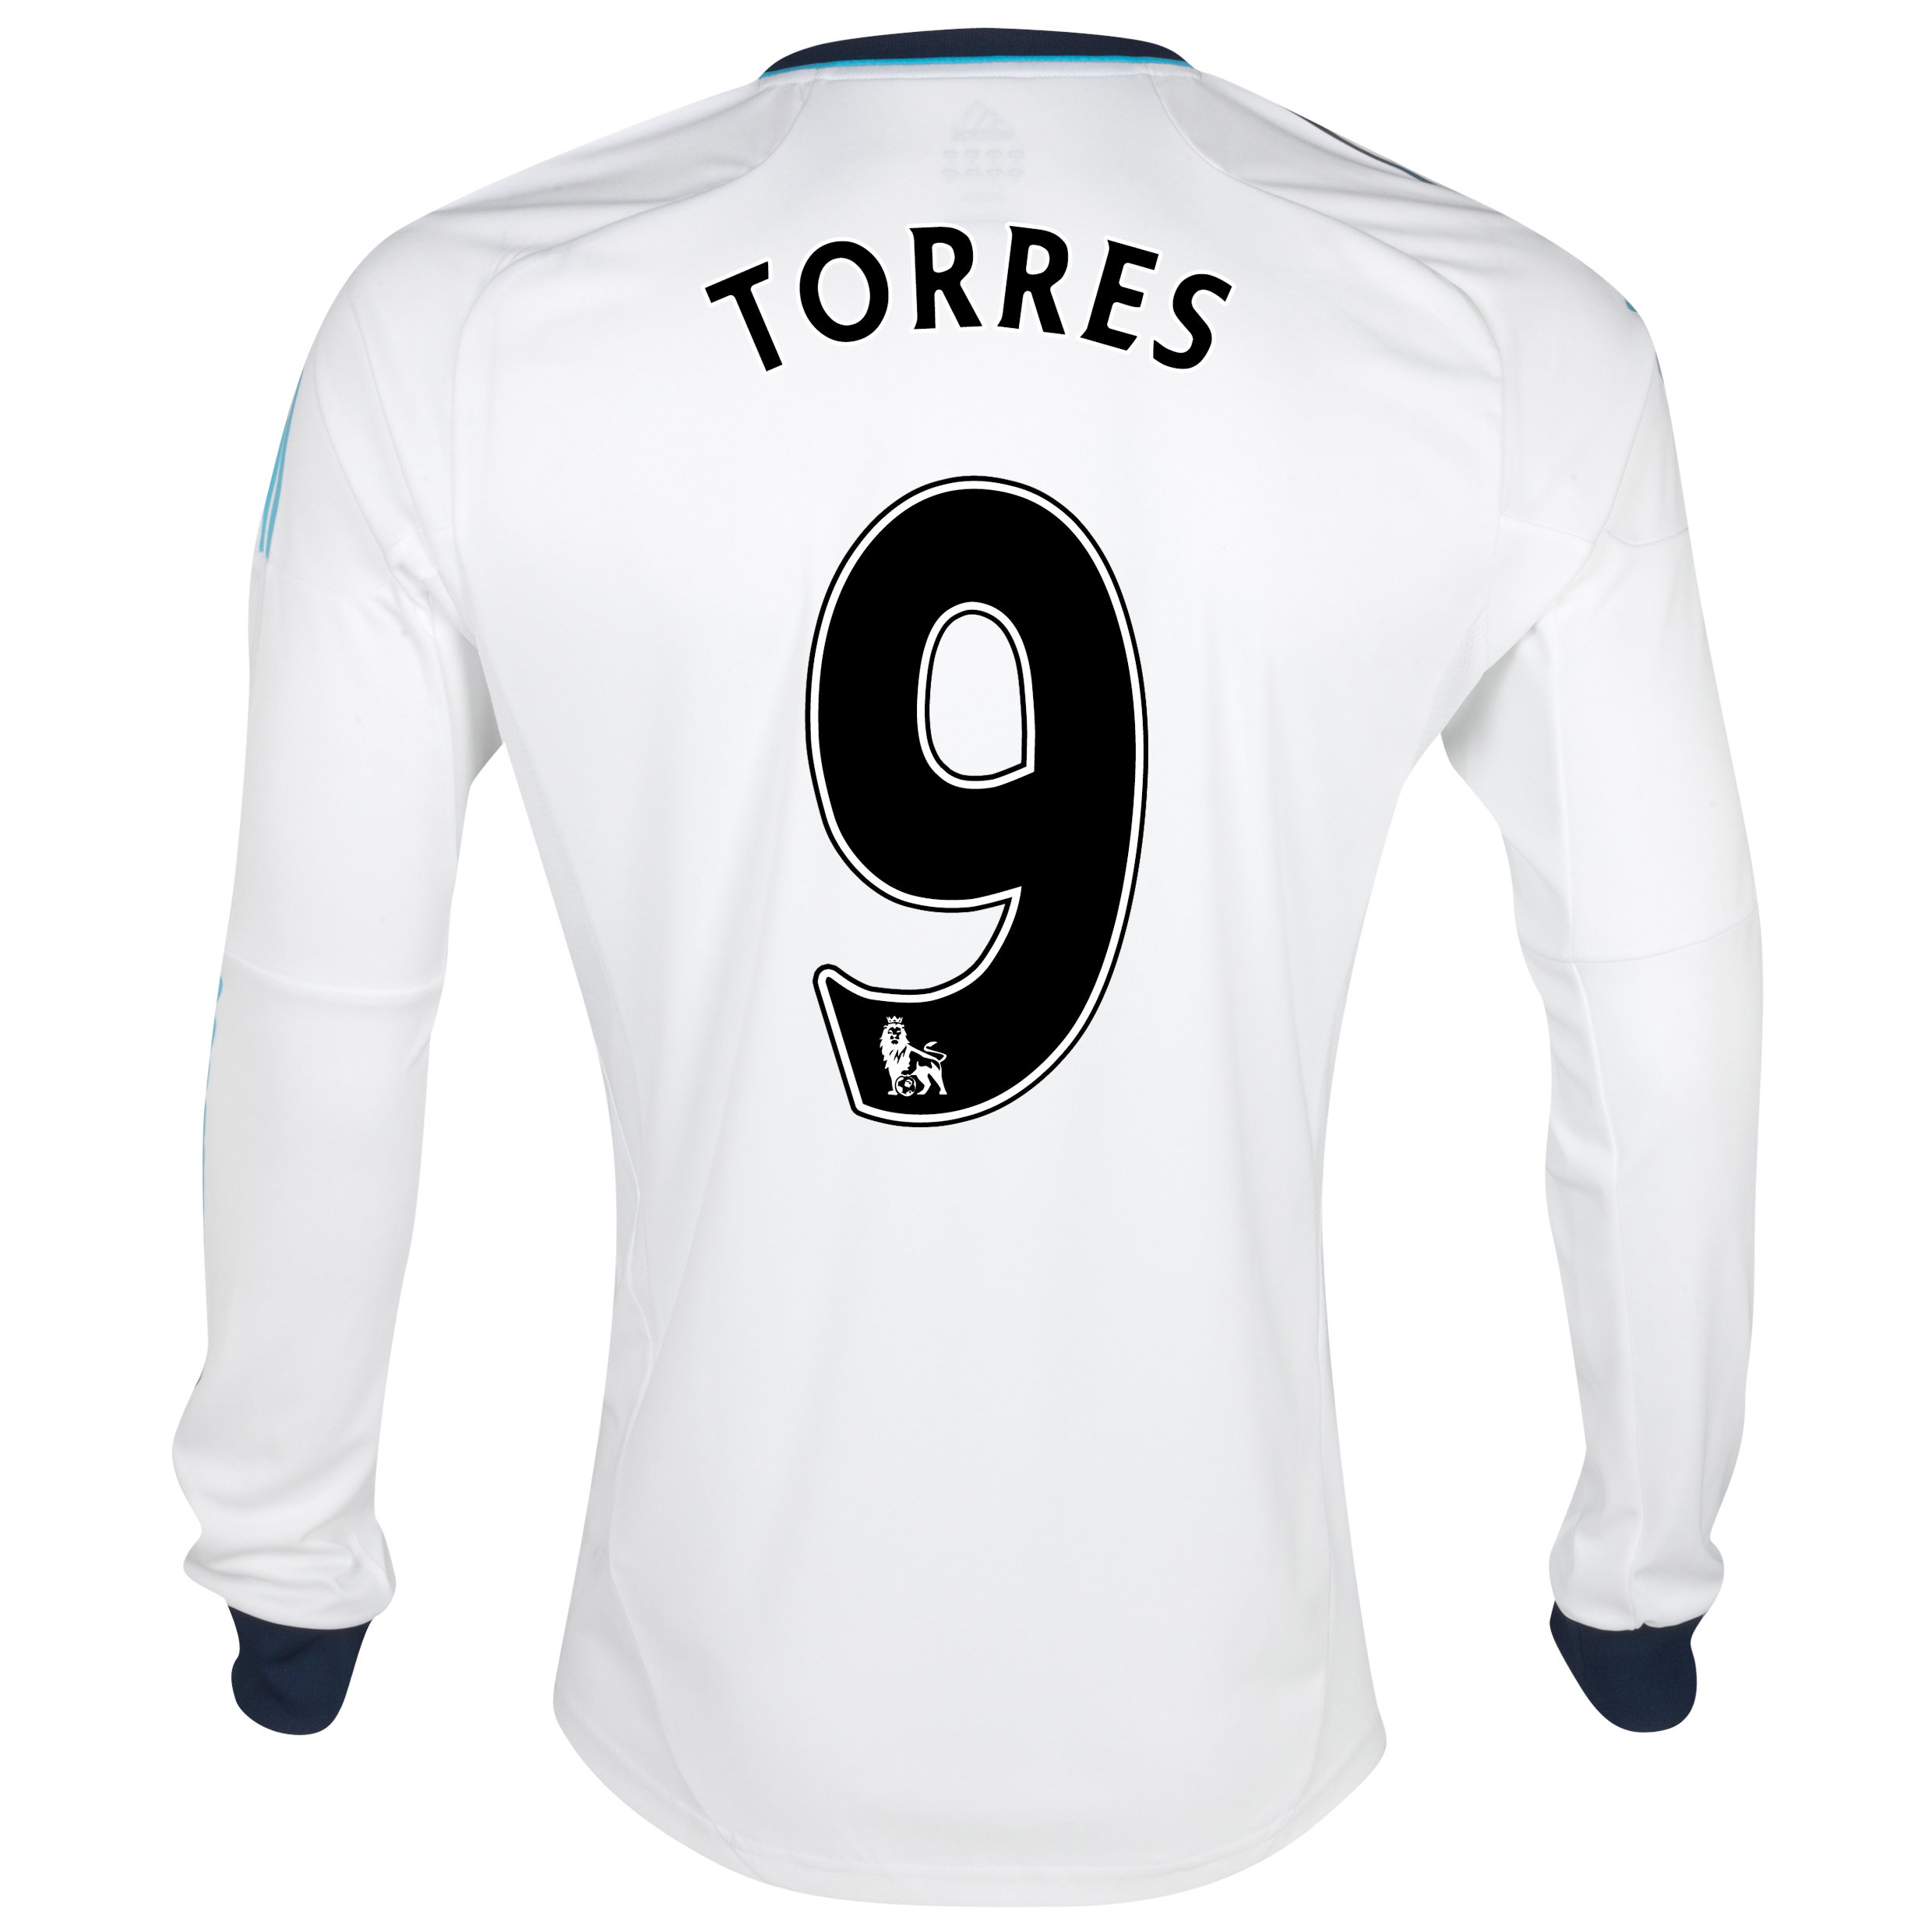 Chelsea Away Shirt 2012/13 - Long Sleeved  - Youths with Torres 9 printing